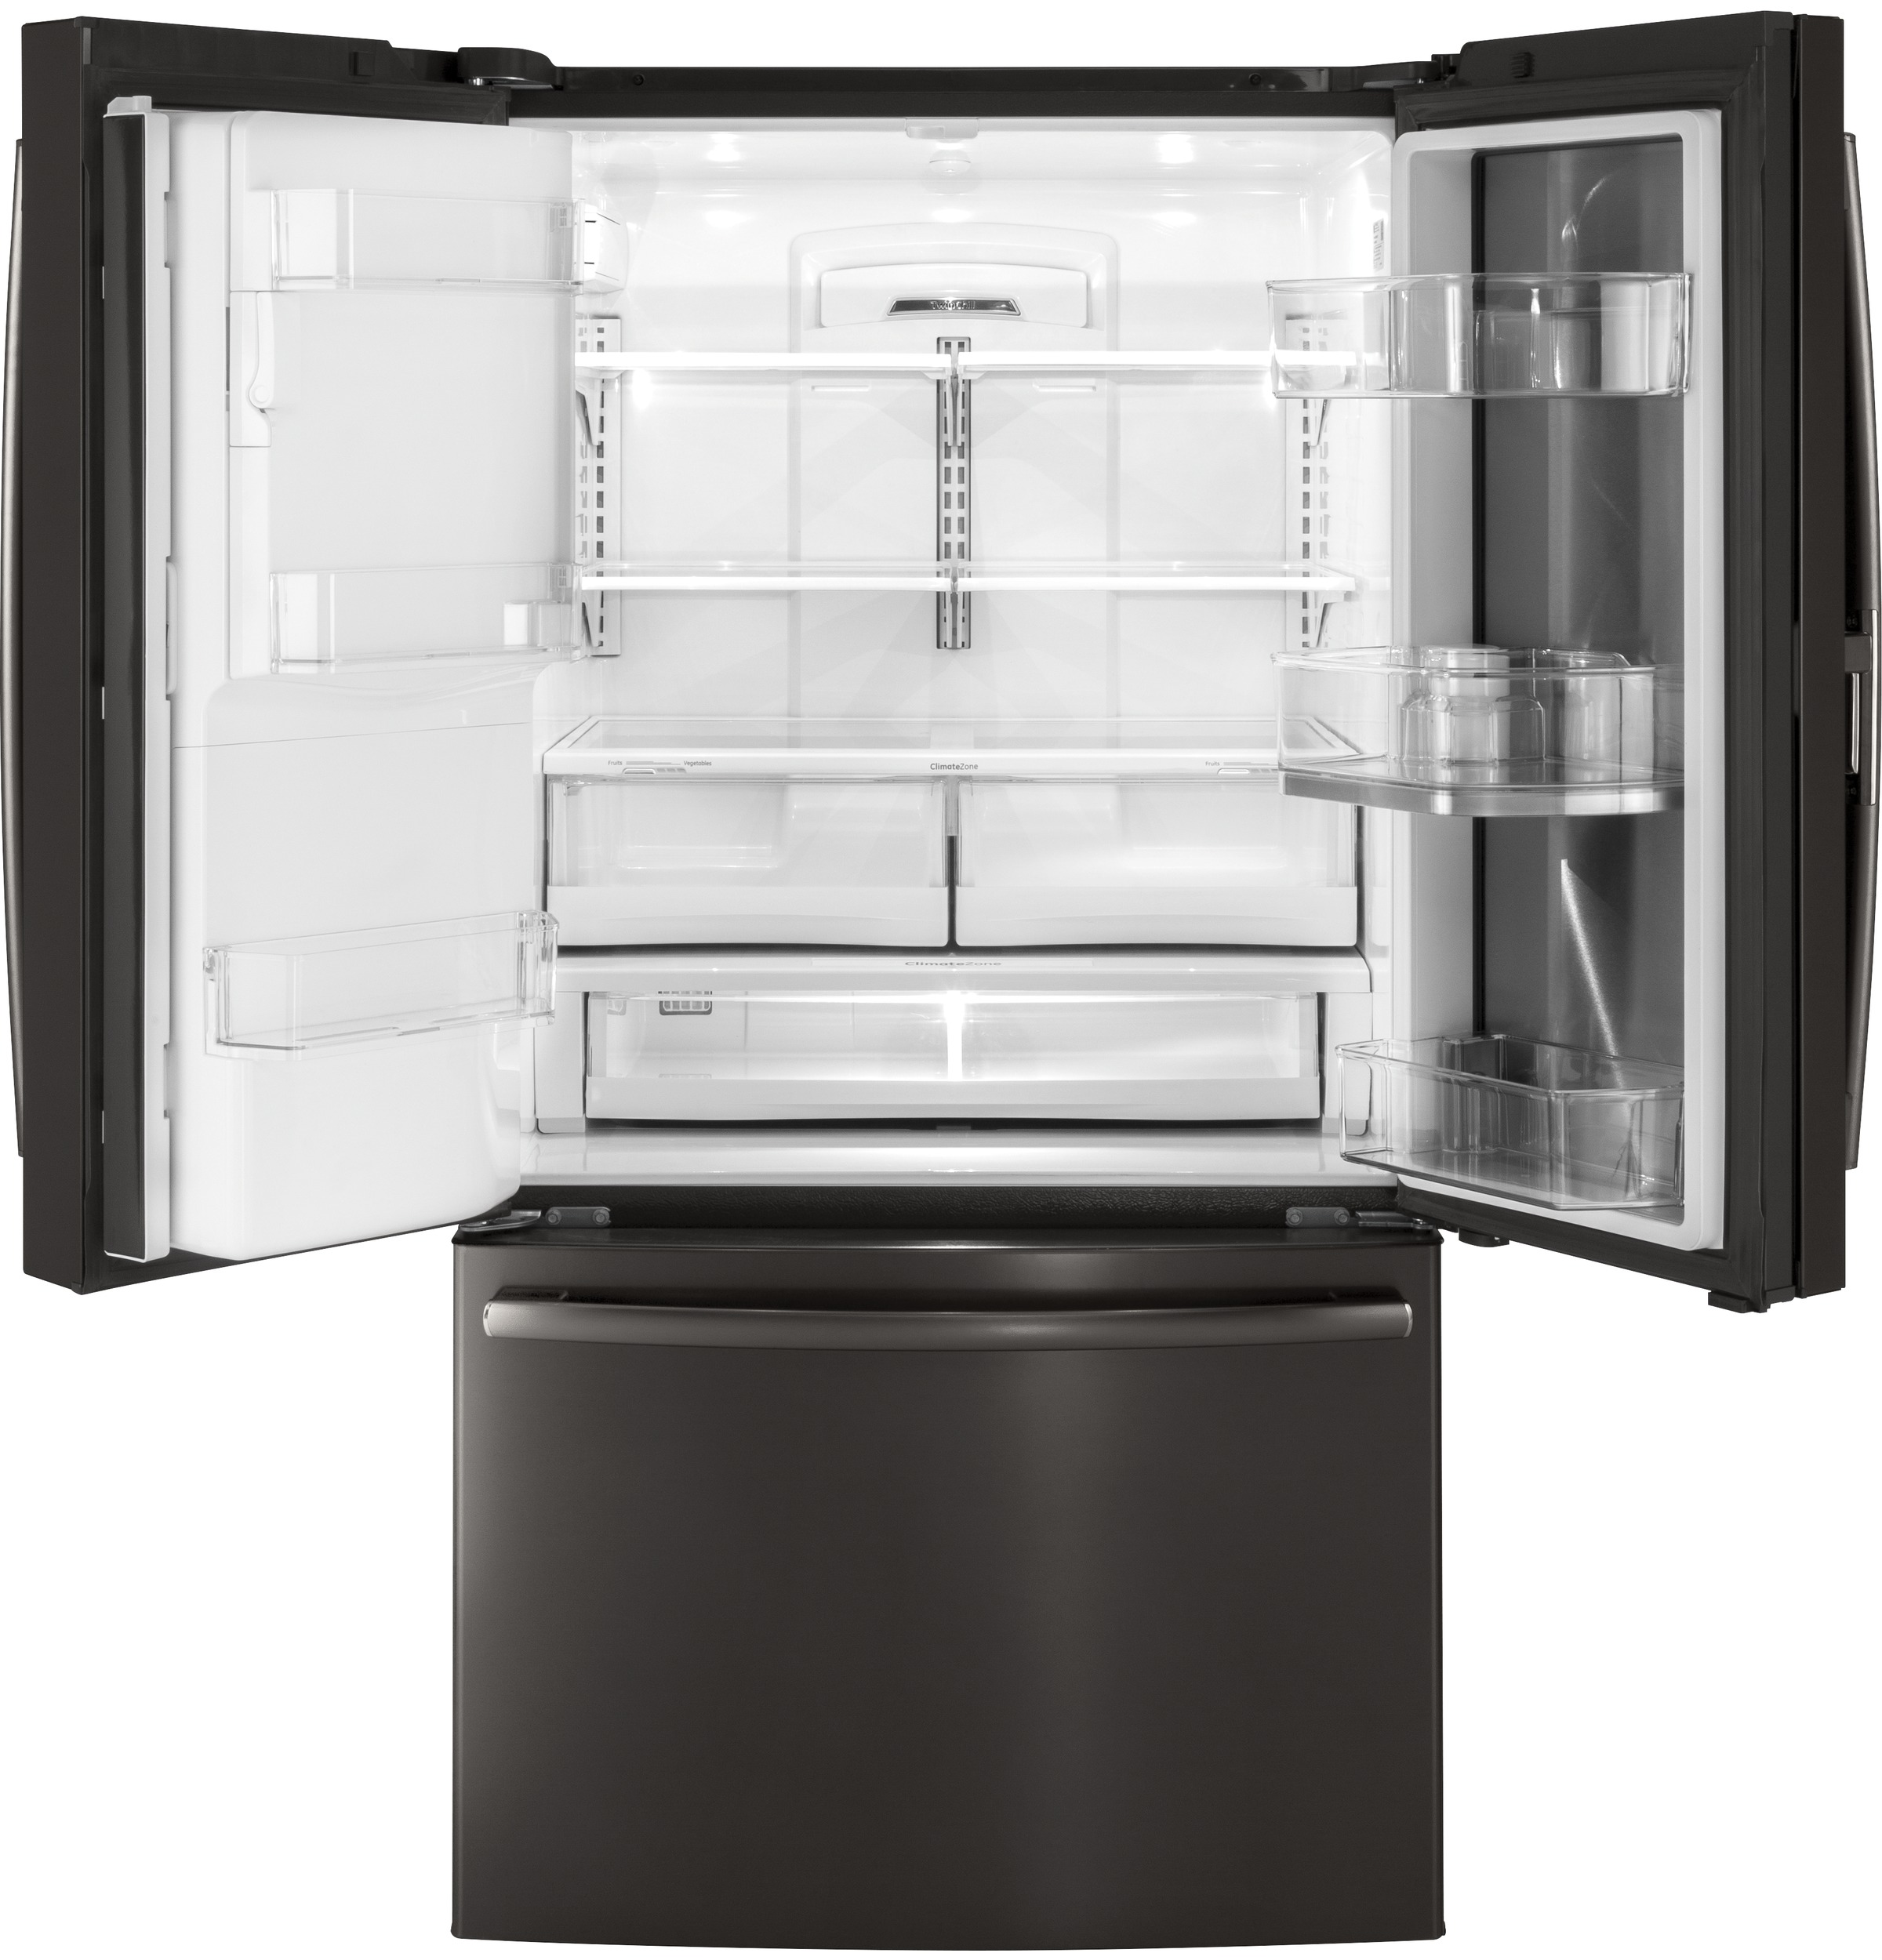 Model: GFD28GBLTS | GE GE® 27.8 Cu. Ft. French-Door Refrigerator with Door In Door